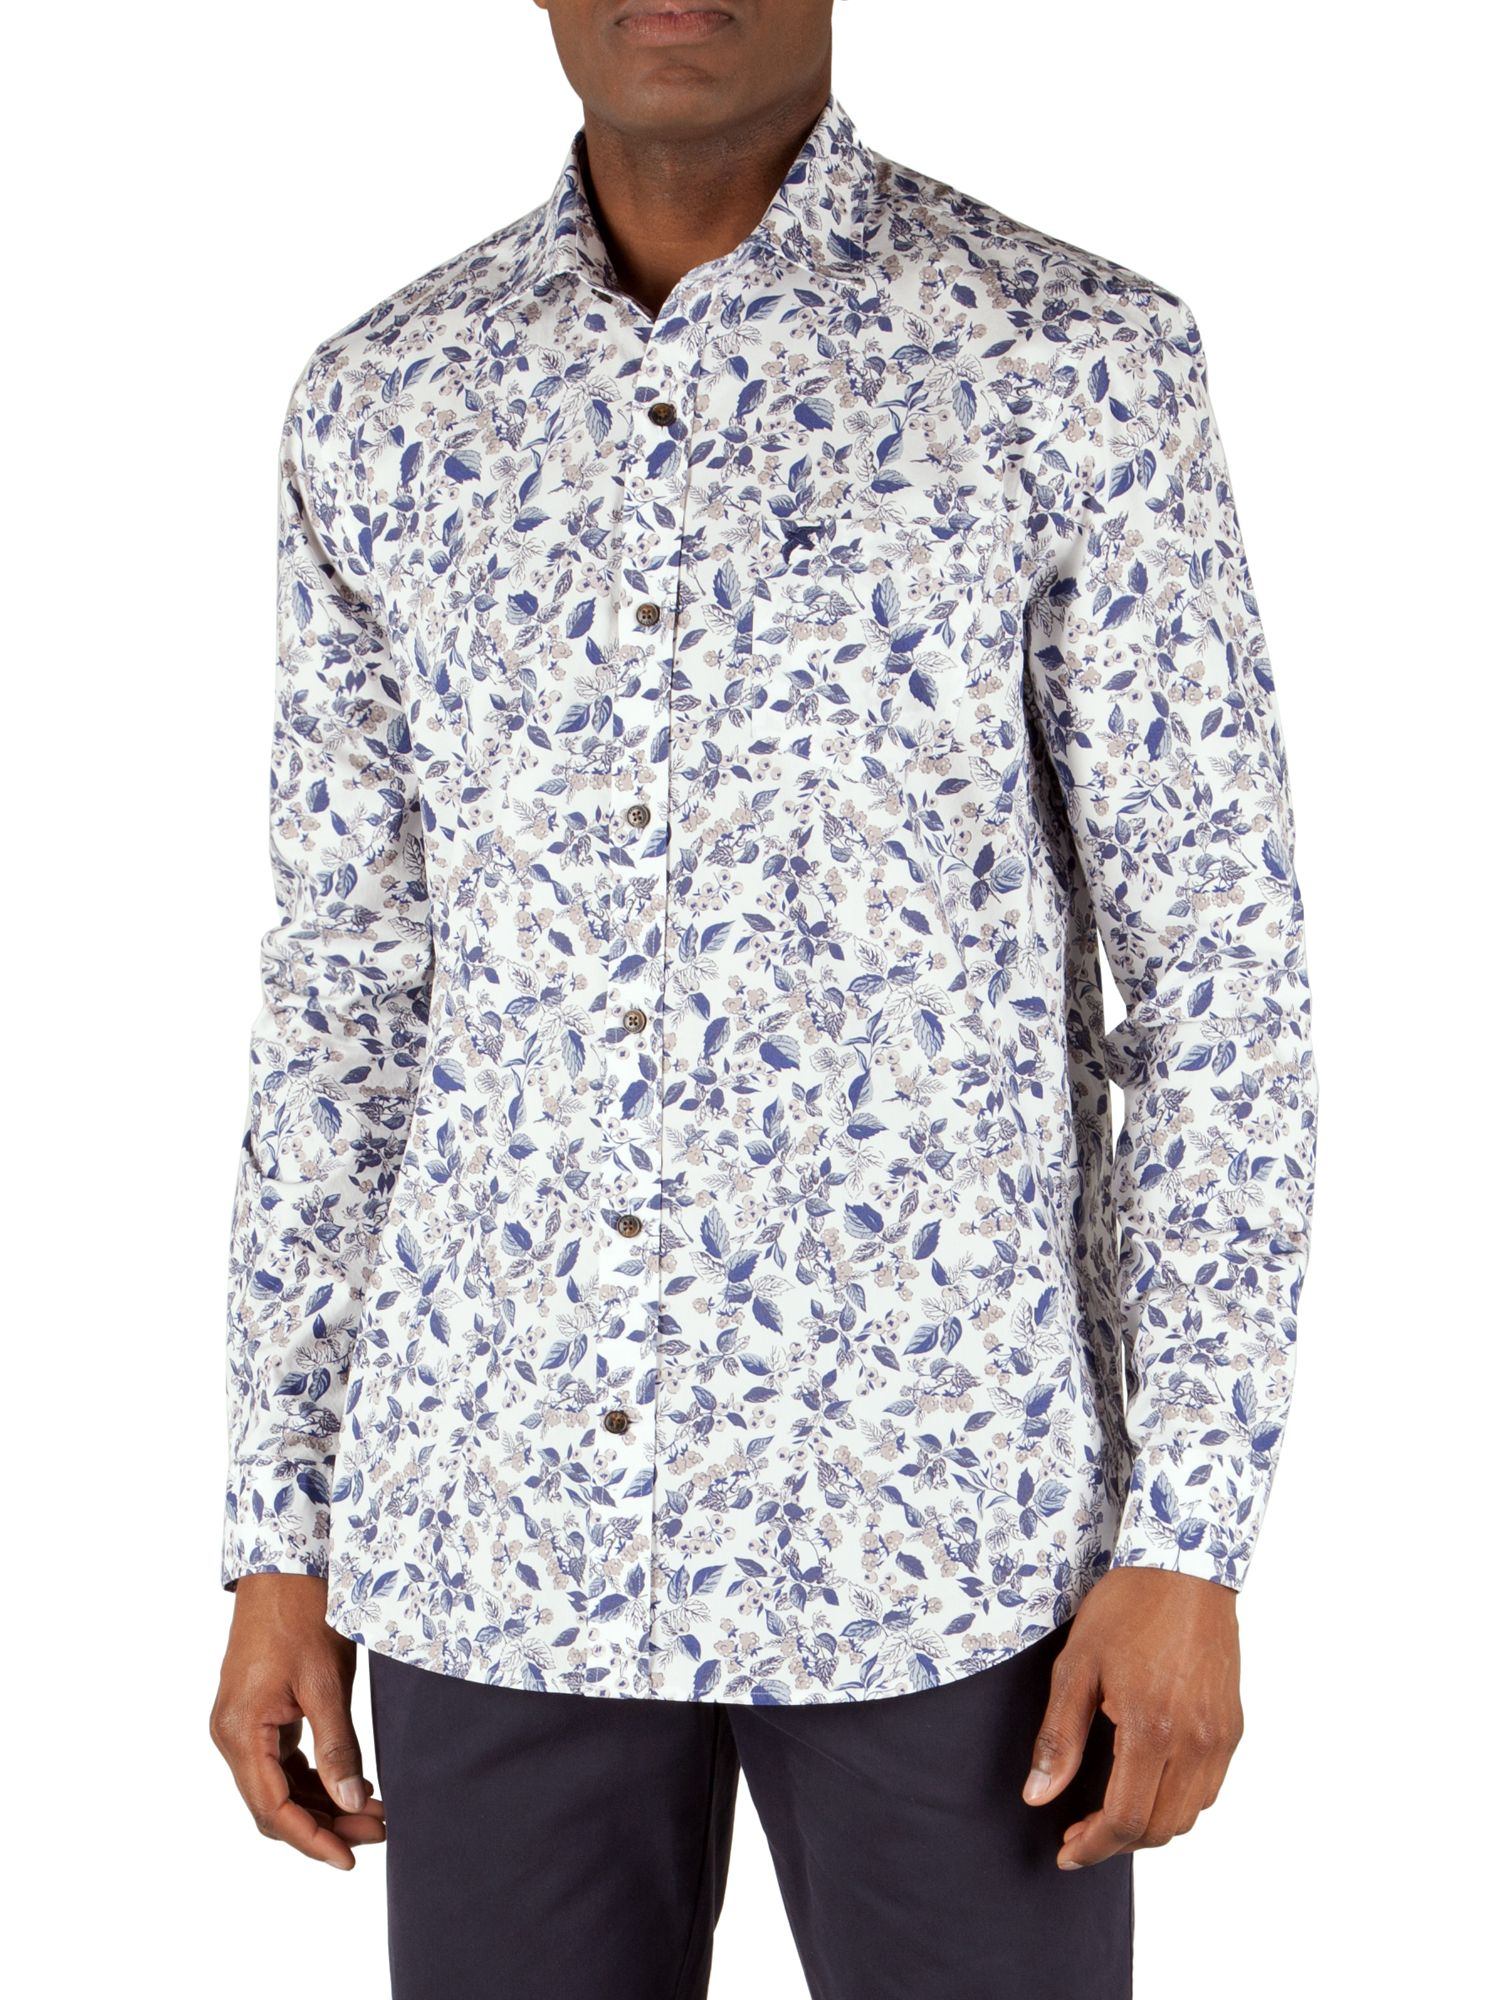 Truro printed berries shirt